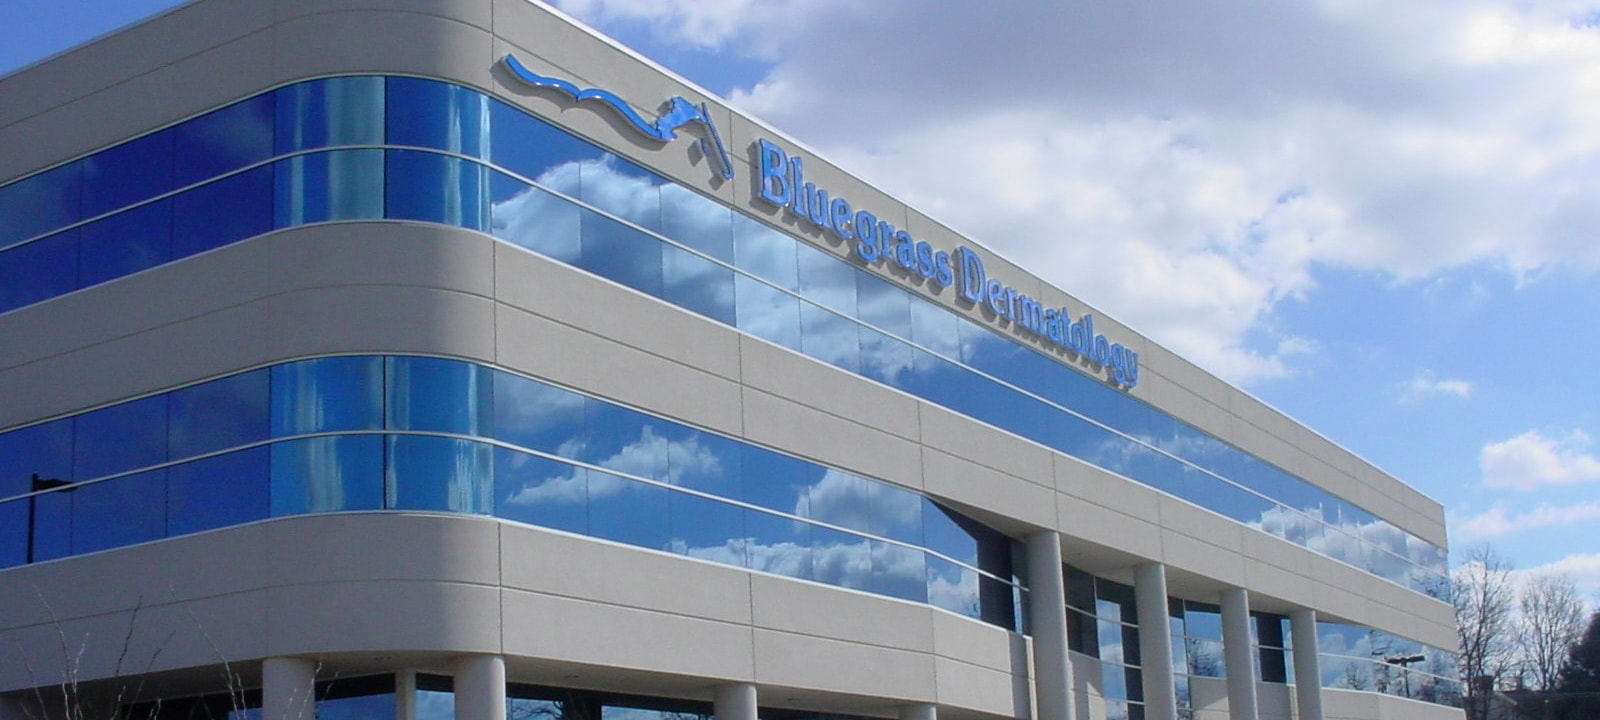 Bluegrass Dermatology Office Building